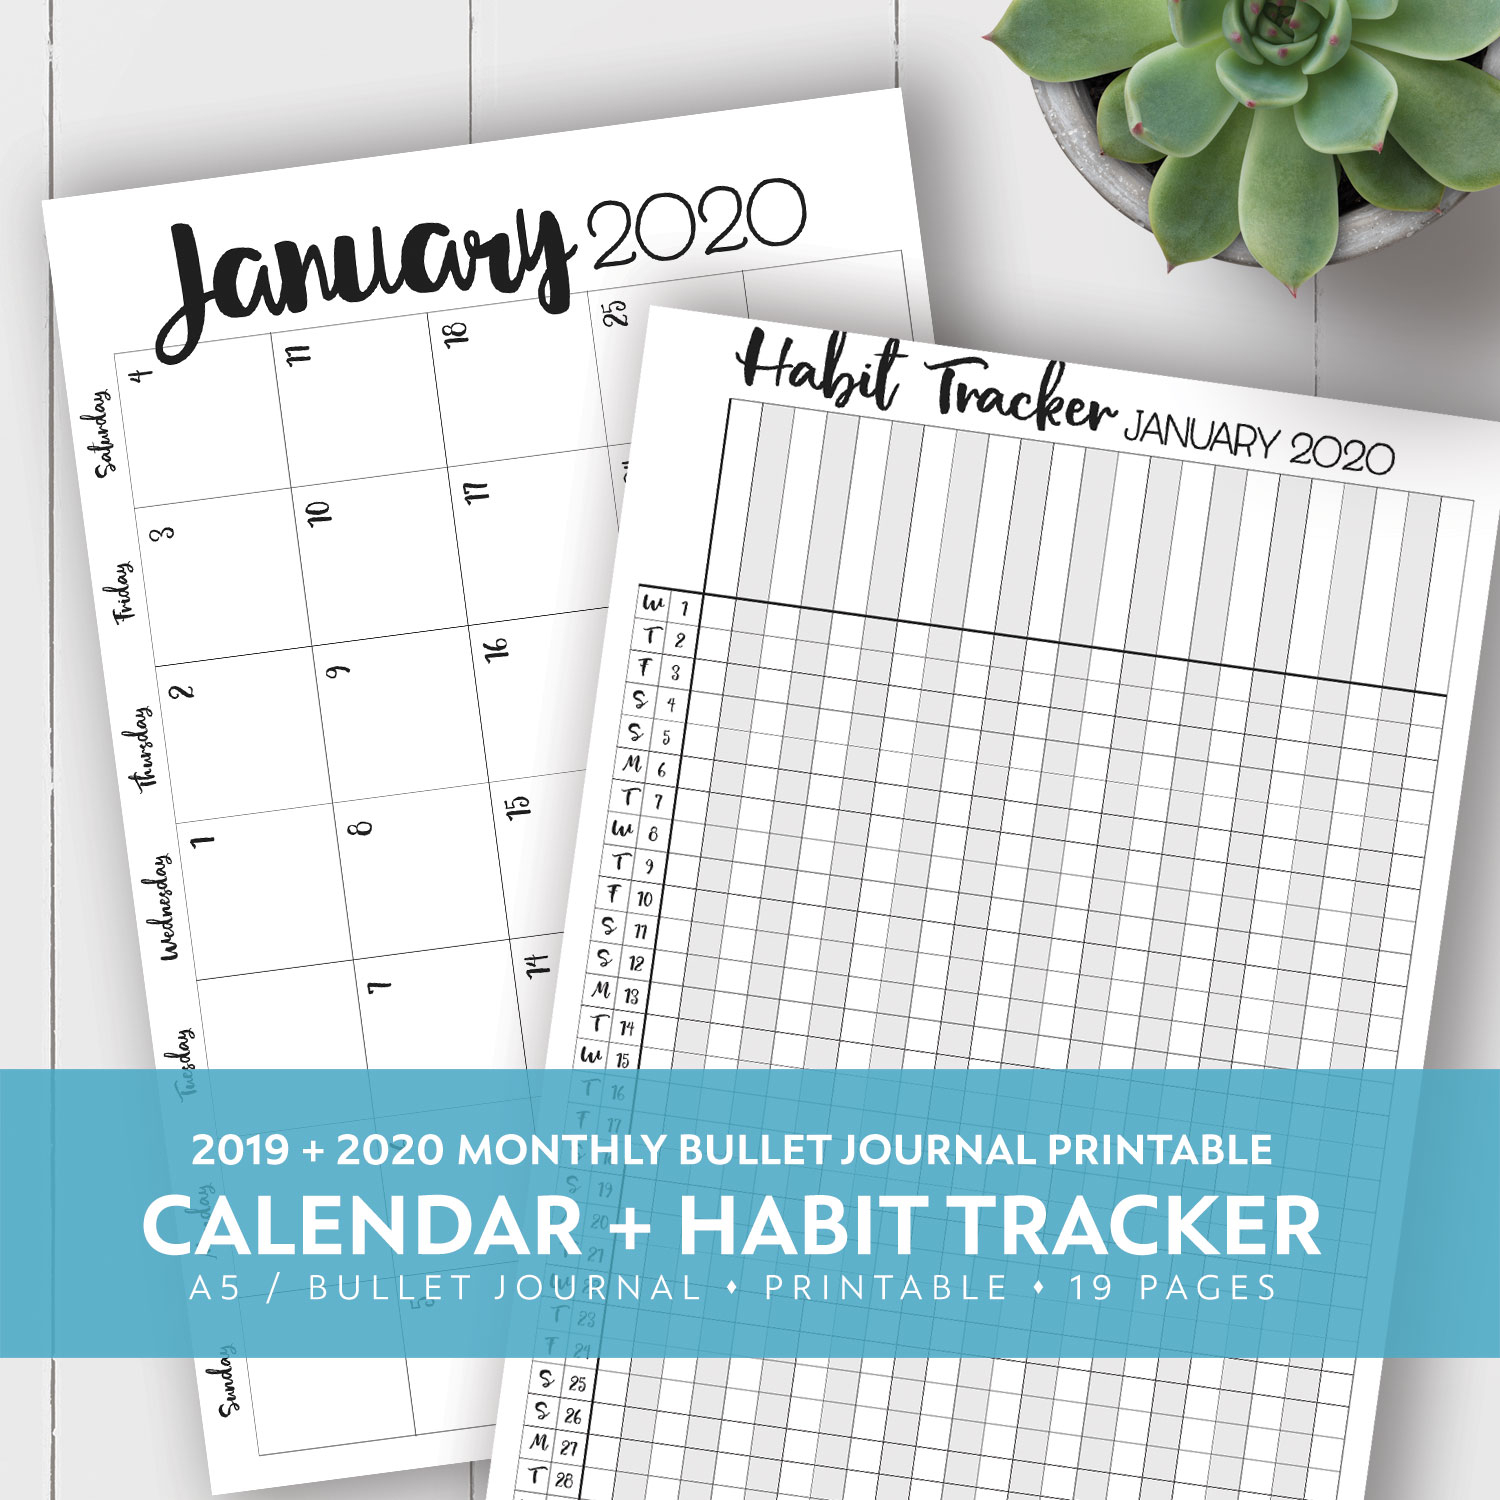 2019 + 2020 Monthly Printable Calendar + Habit Tracker Kit throughout Printable Month To Month Clalanders Wityh Lines 2019/2020